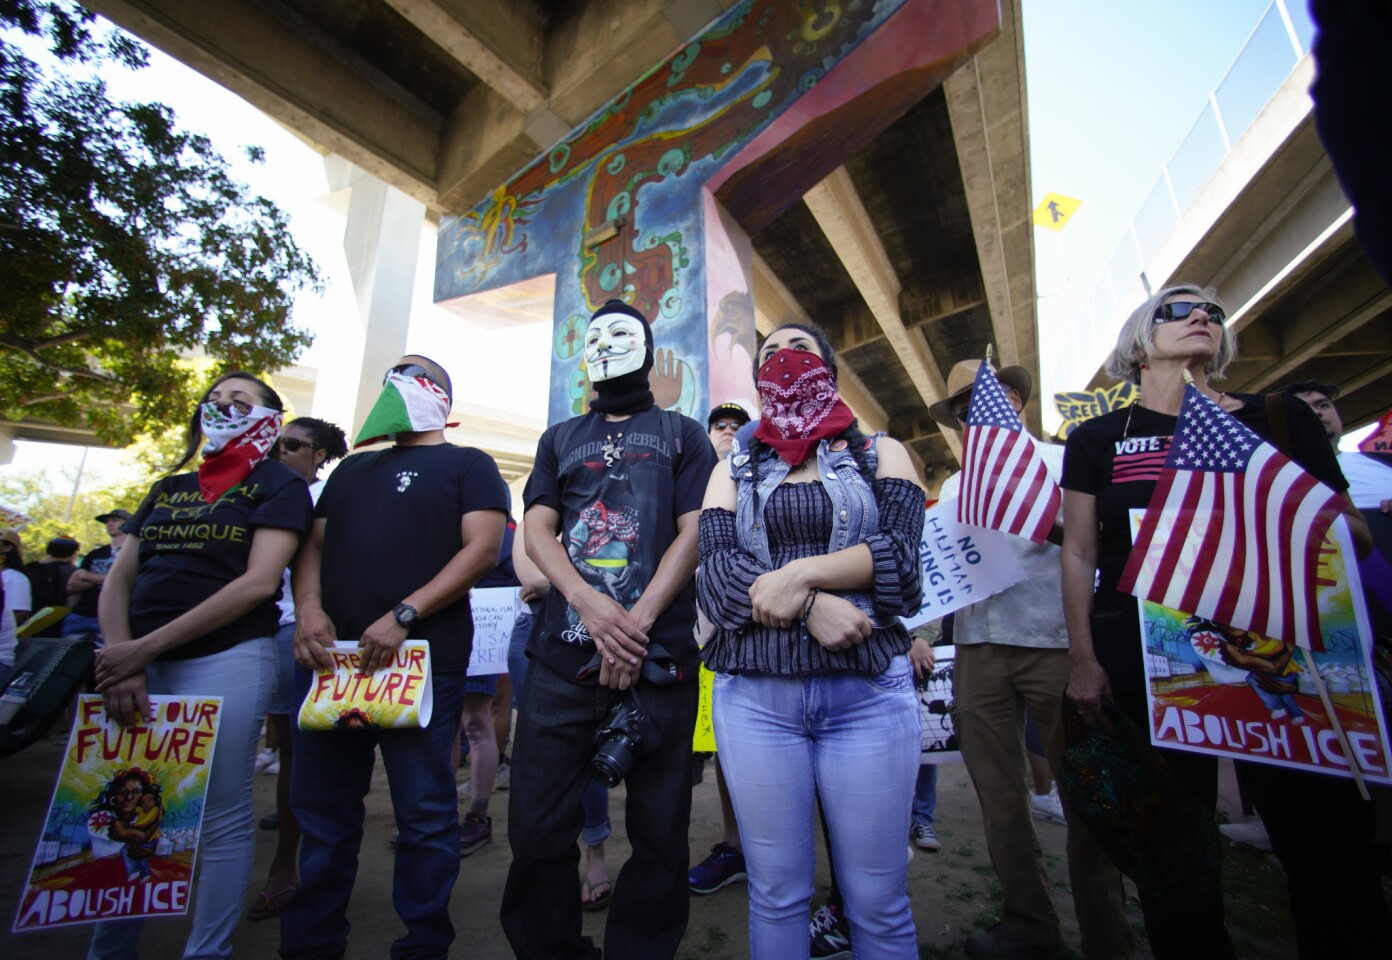 Protestors staged at Chicano Park where they heard from speakers before the march to downtown for the Free Our Future protest that opposes family separation.